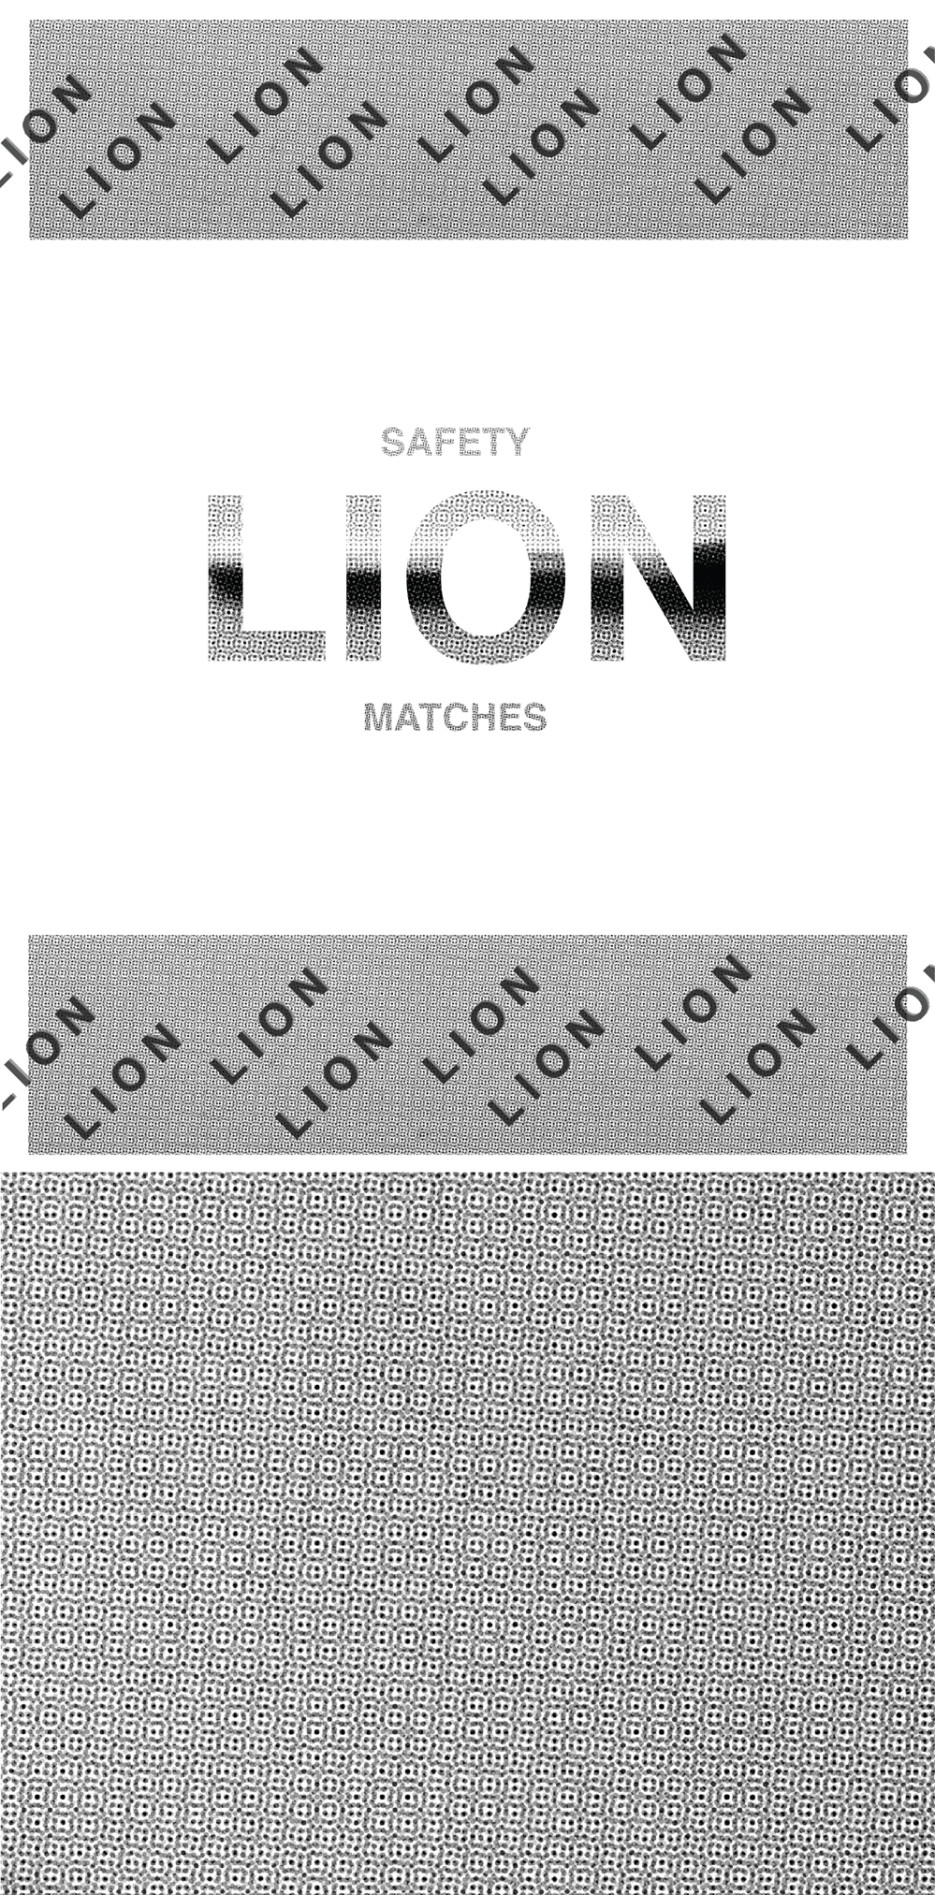 Kelvin Southwood x Lion Matches (2) cc